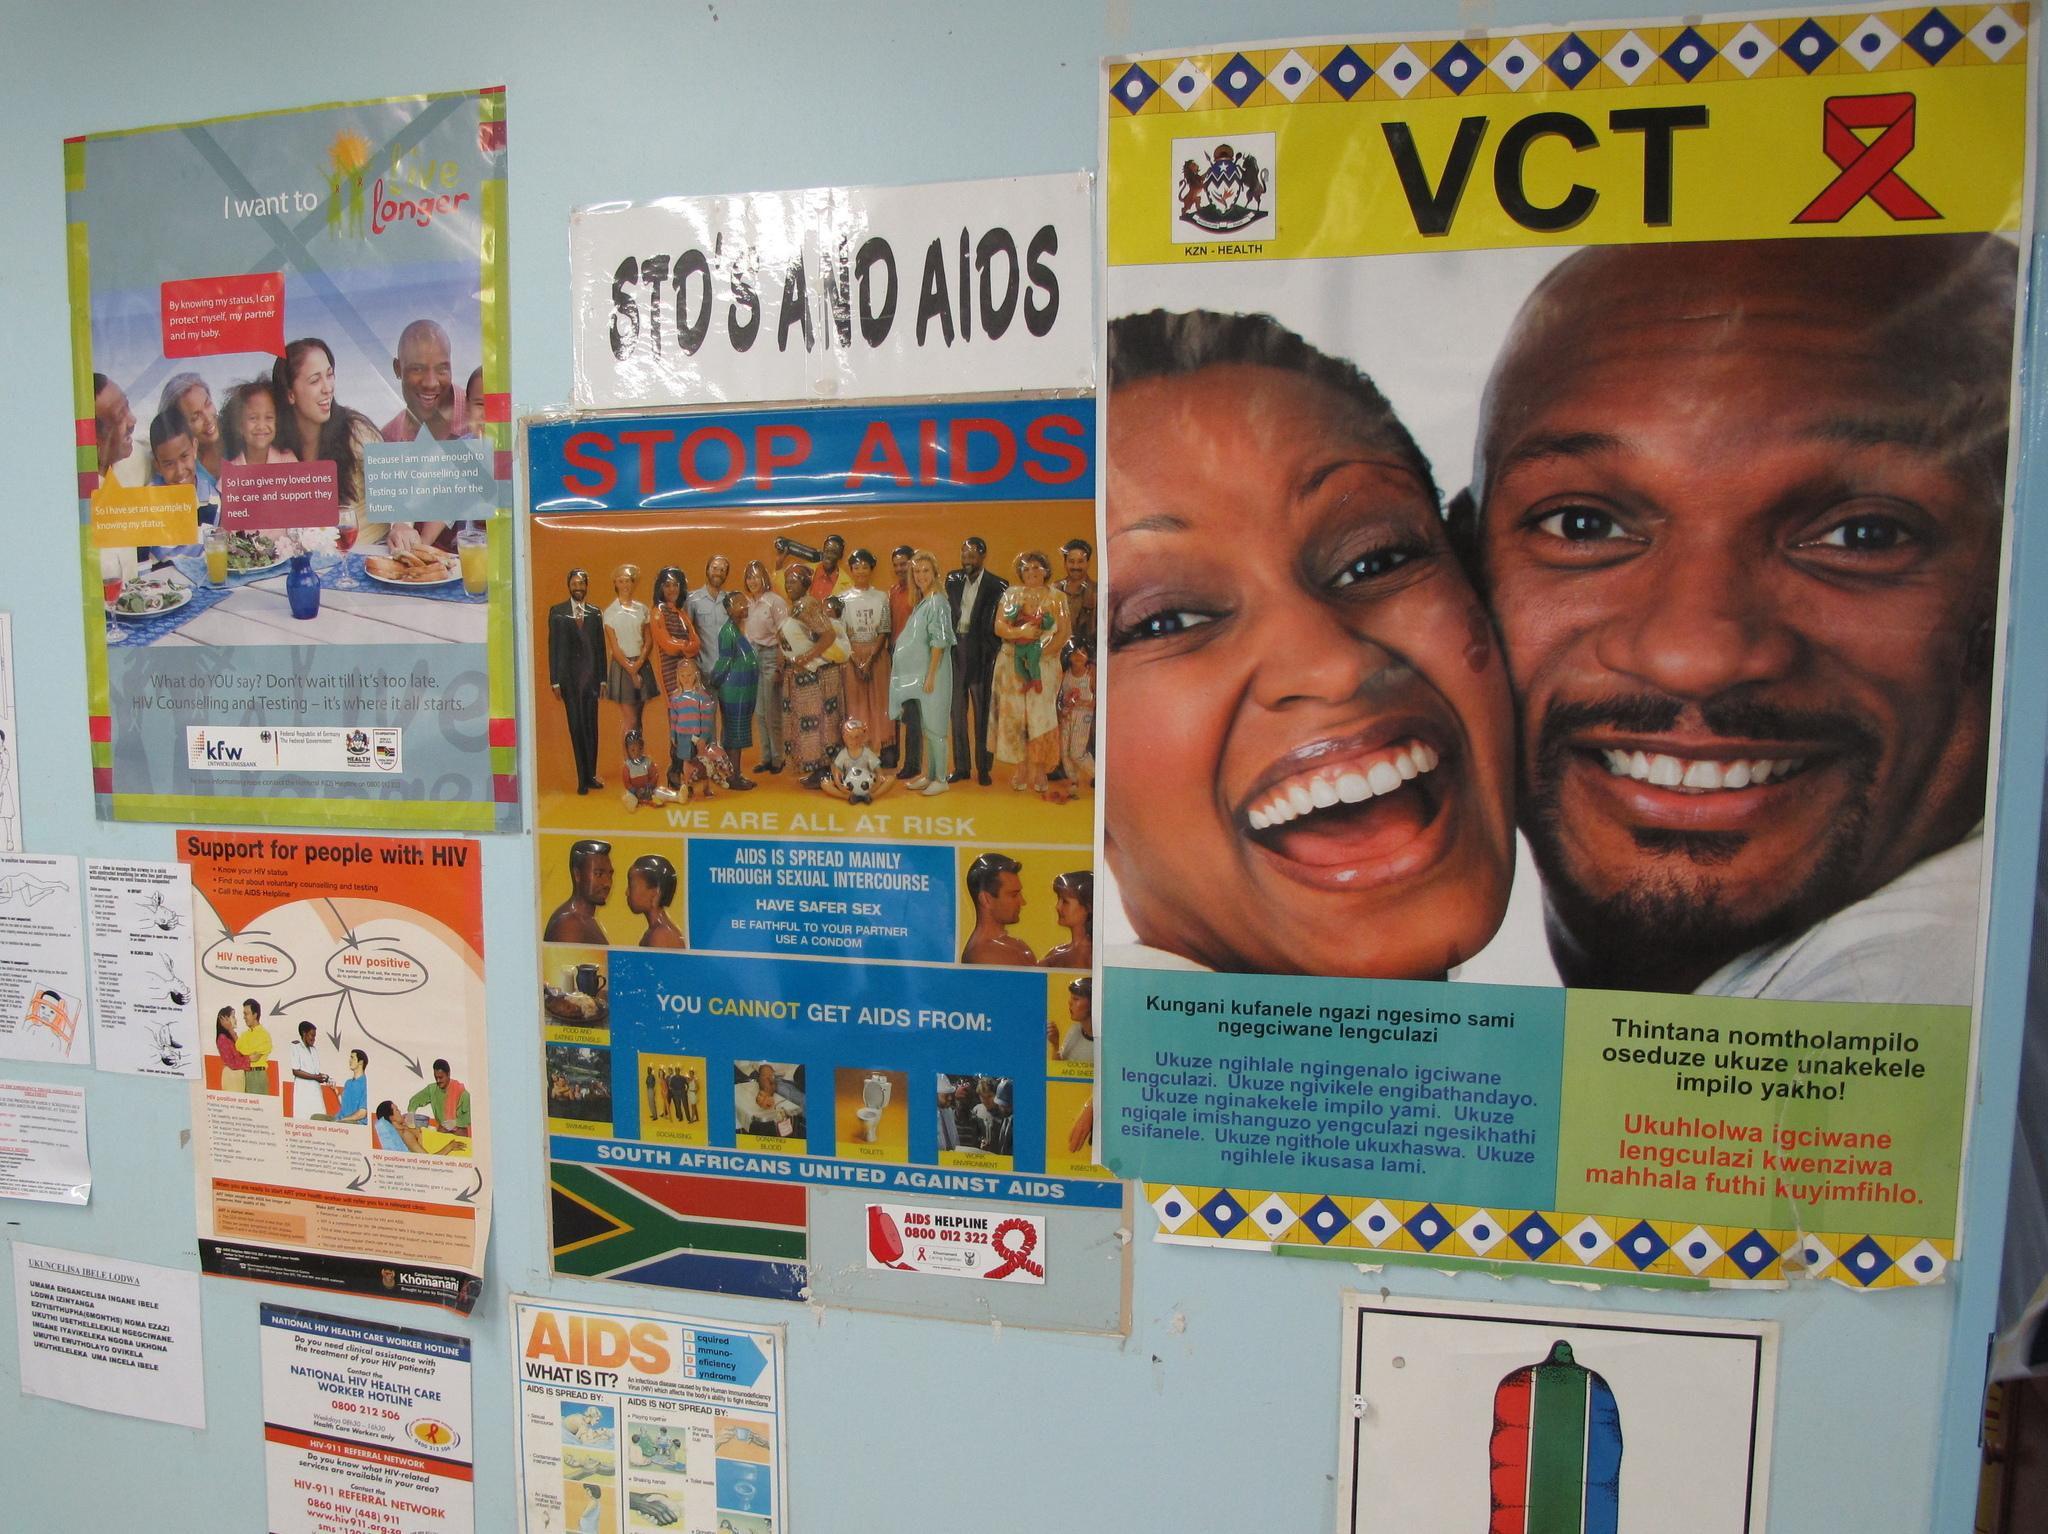 hiv aids south africa Understanding the link between hiv and preterm births one in seven babies born prematurely in south africa are born prematurely furthermore, approximately 250,000 babies are born to hiv positive mothers every year.